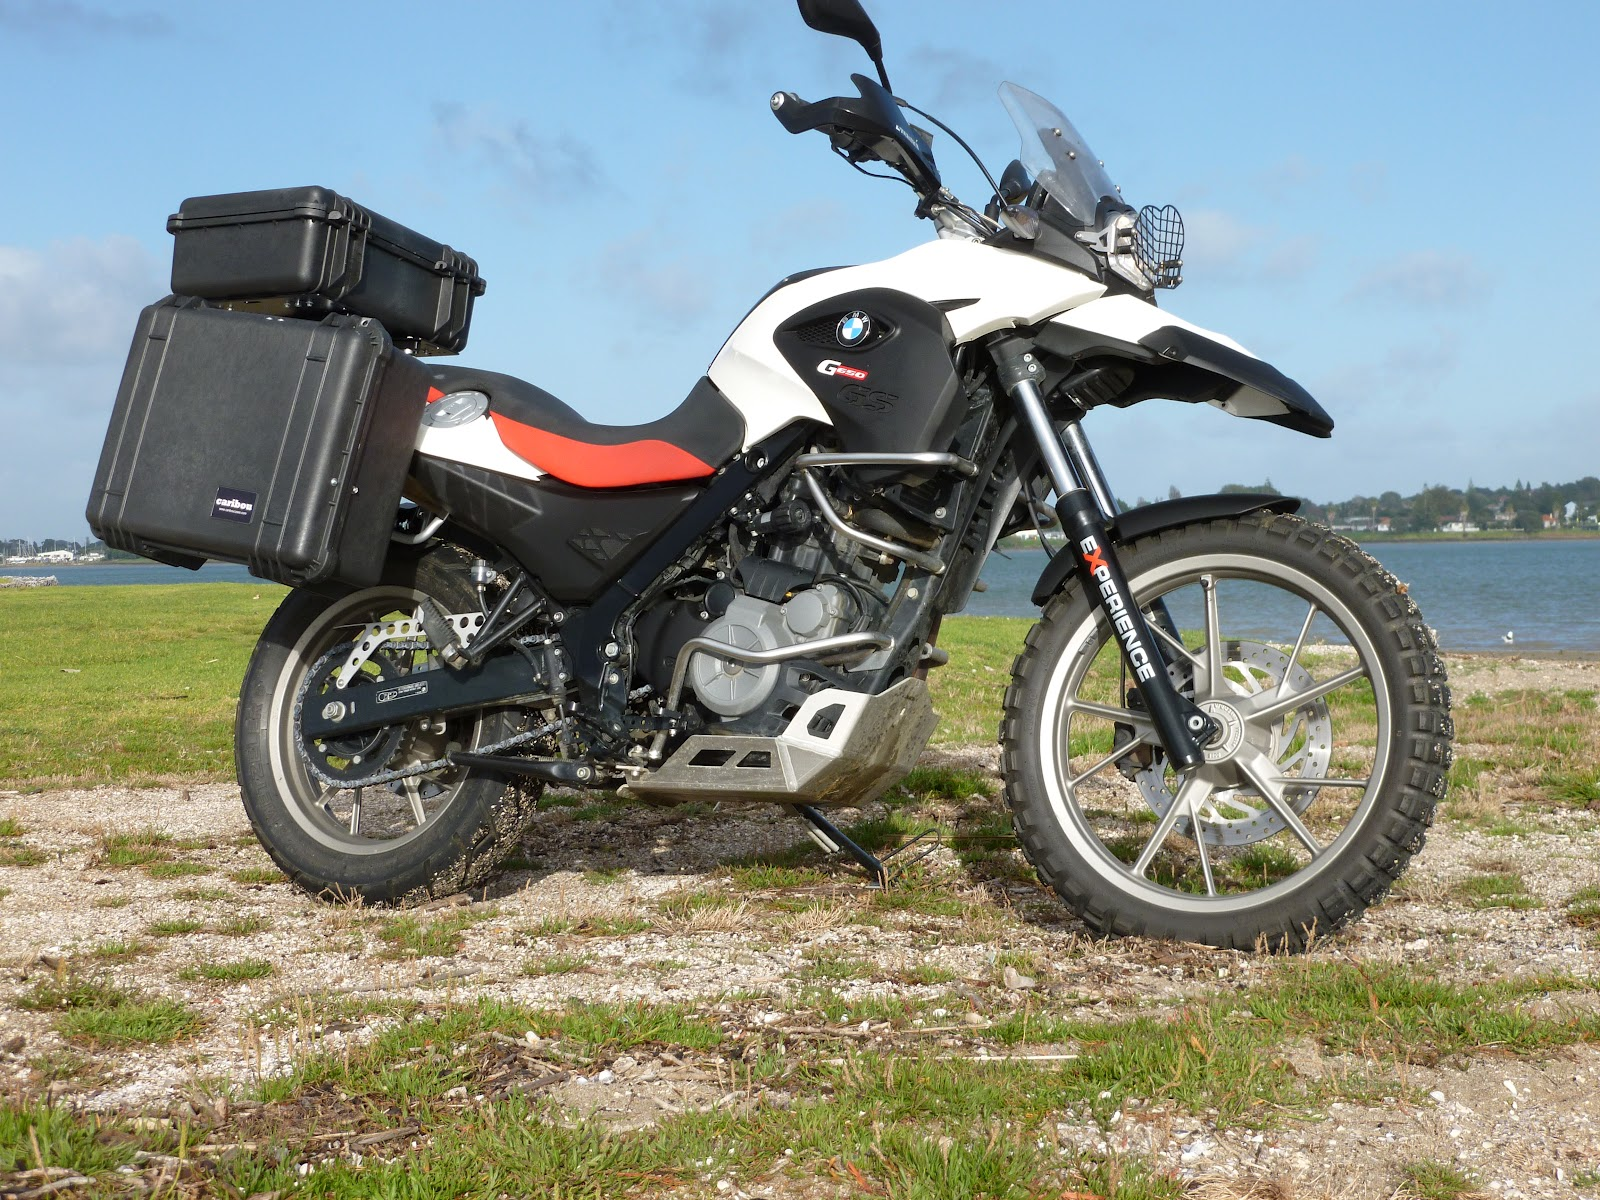 Bmw g650gs 10000km review and bling